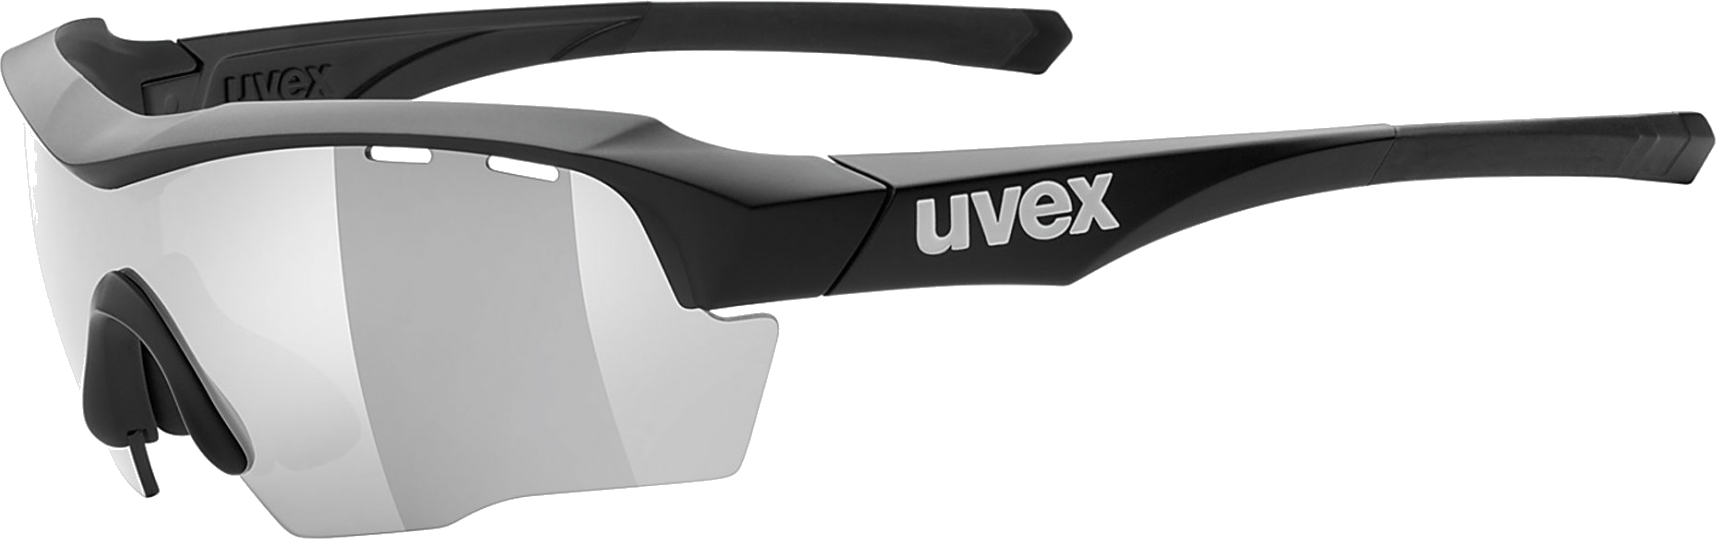 Uvex Sport Sunglasses Png Image PNG Image